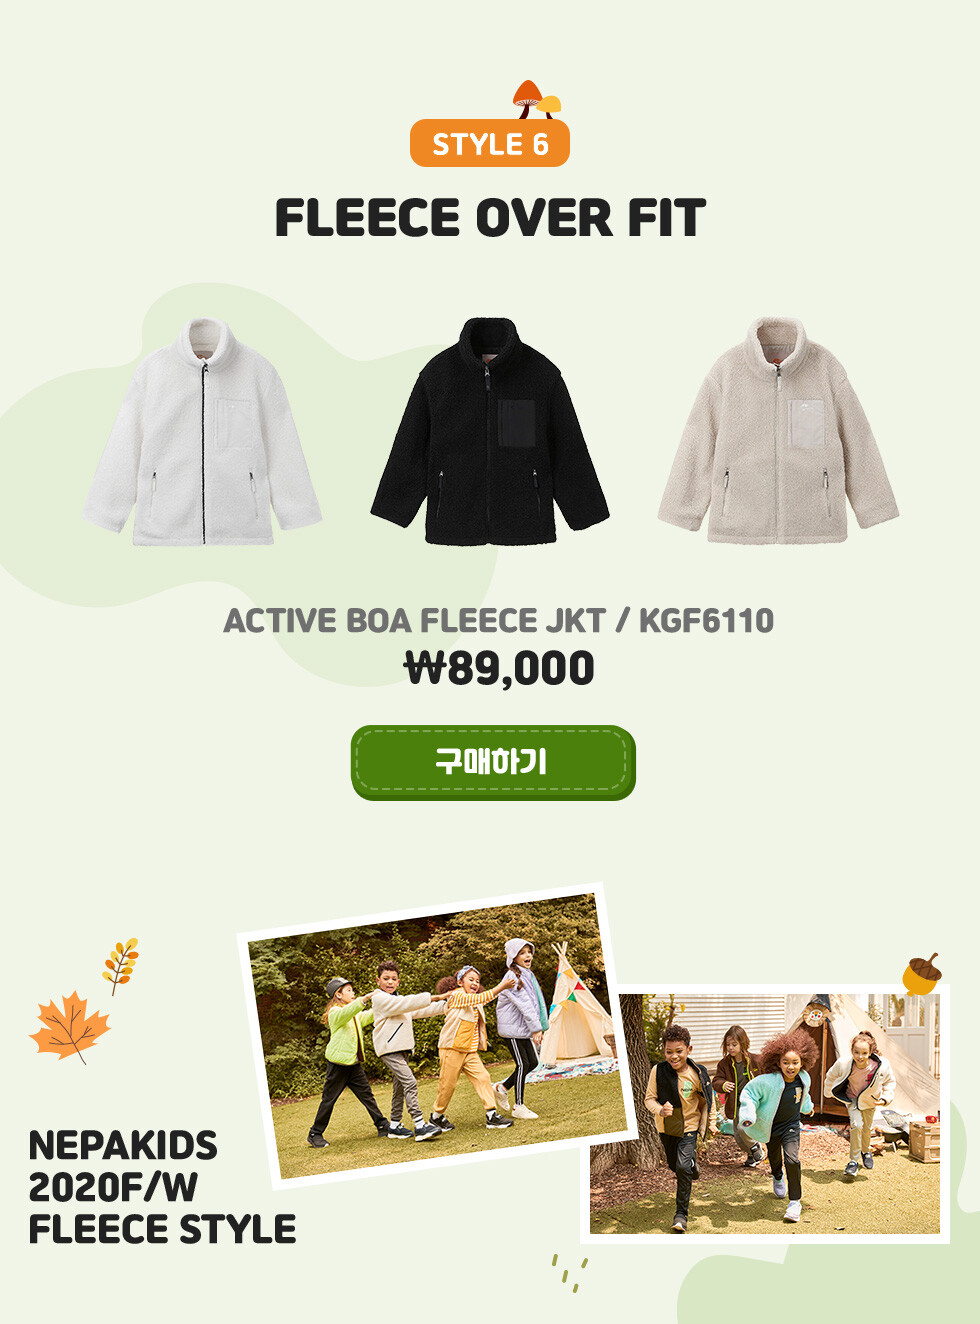 STYLE 6. MIDDLE/OVER FIT ACTIVE BOA FLEECE JKT KGF6110 89,000원